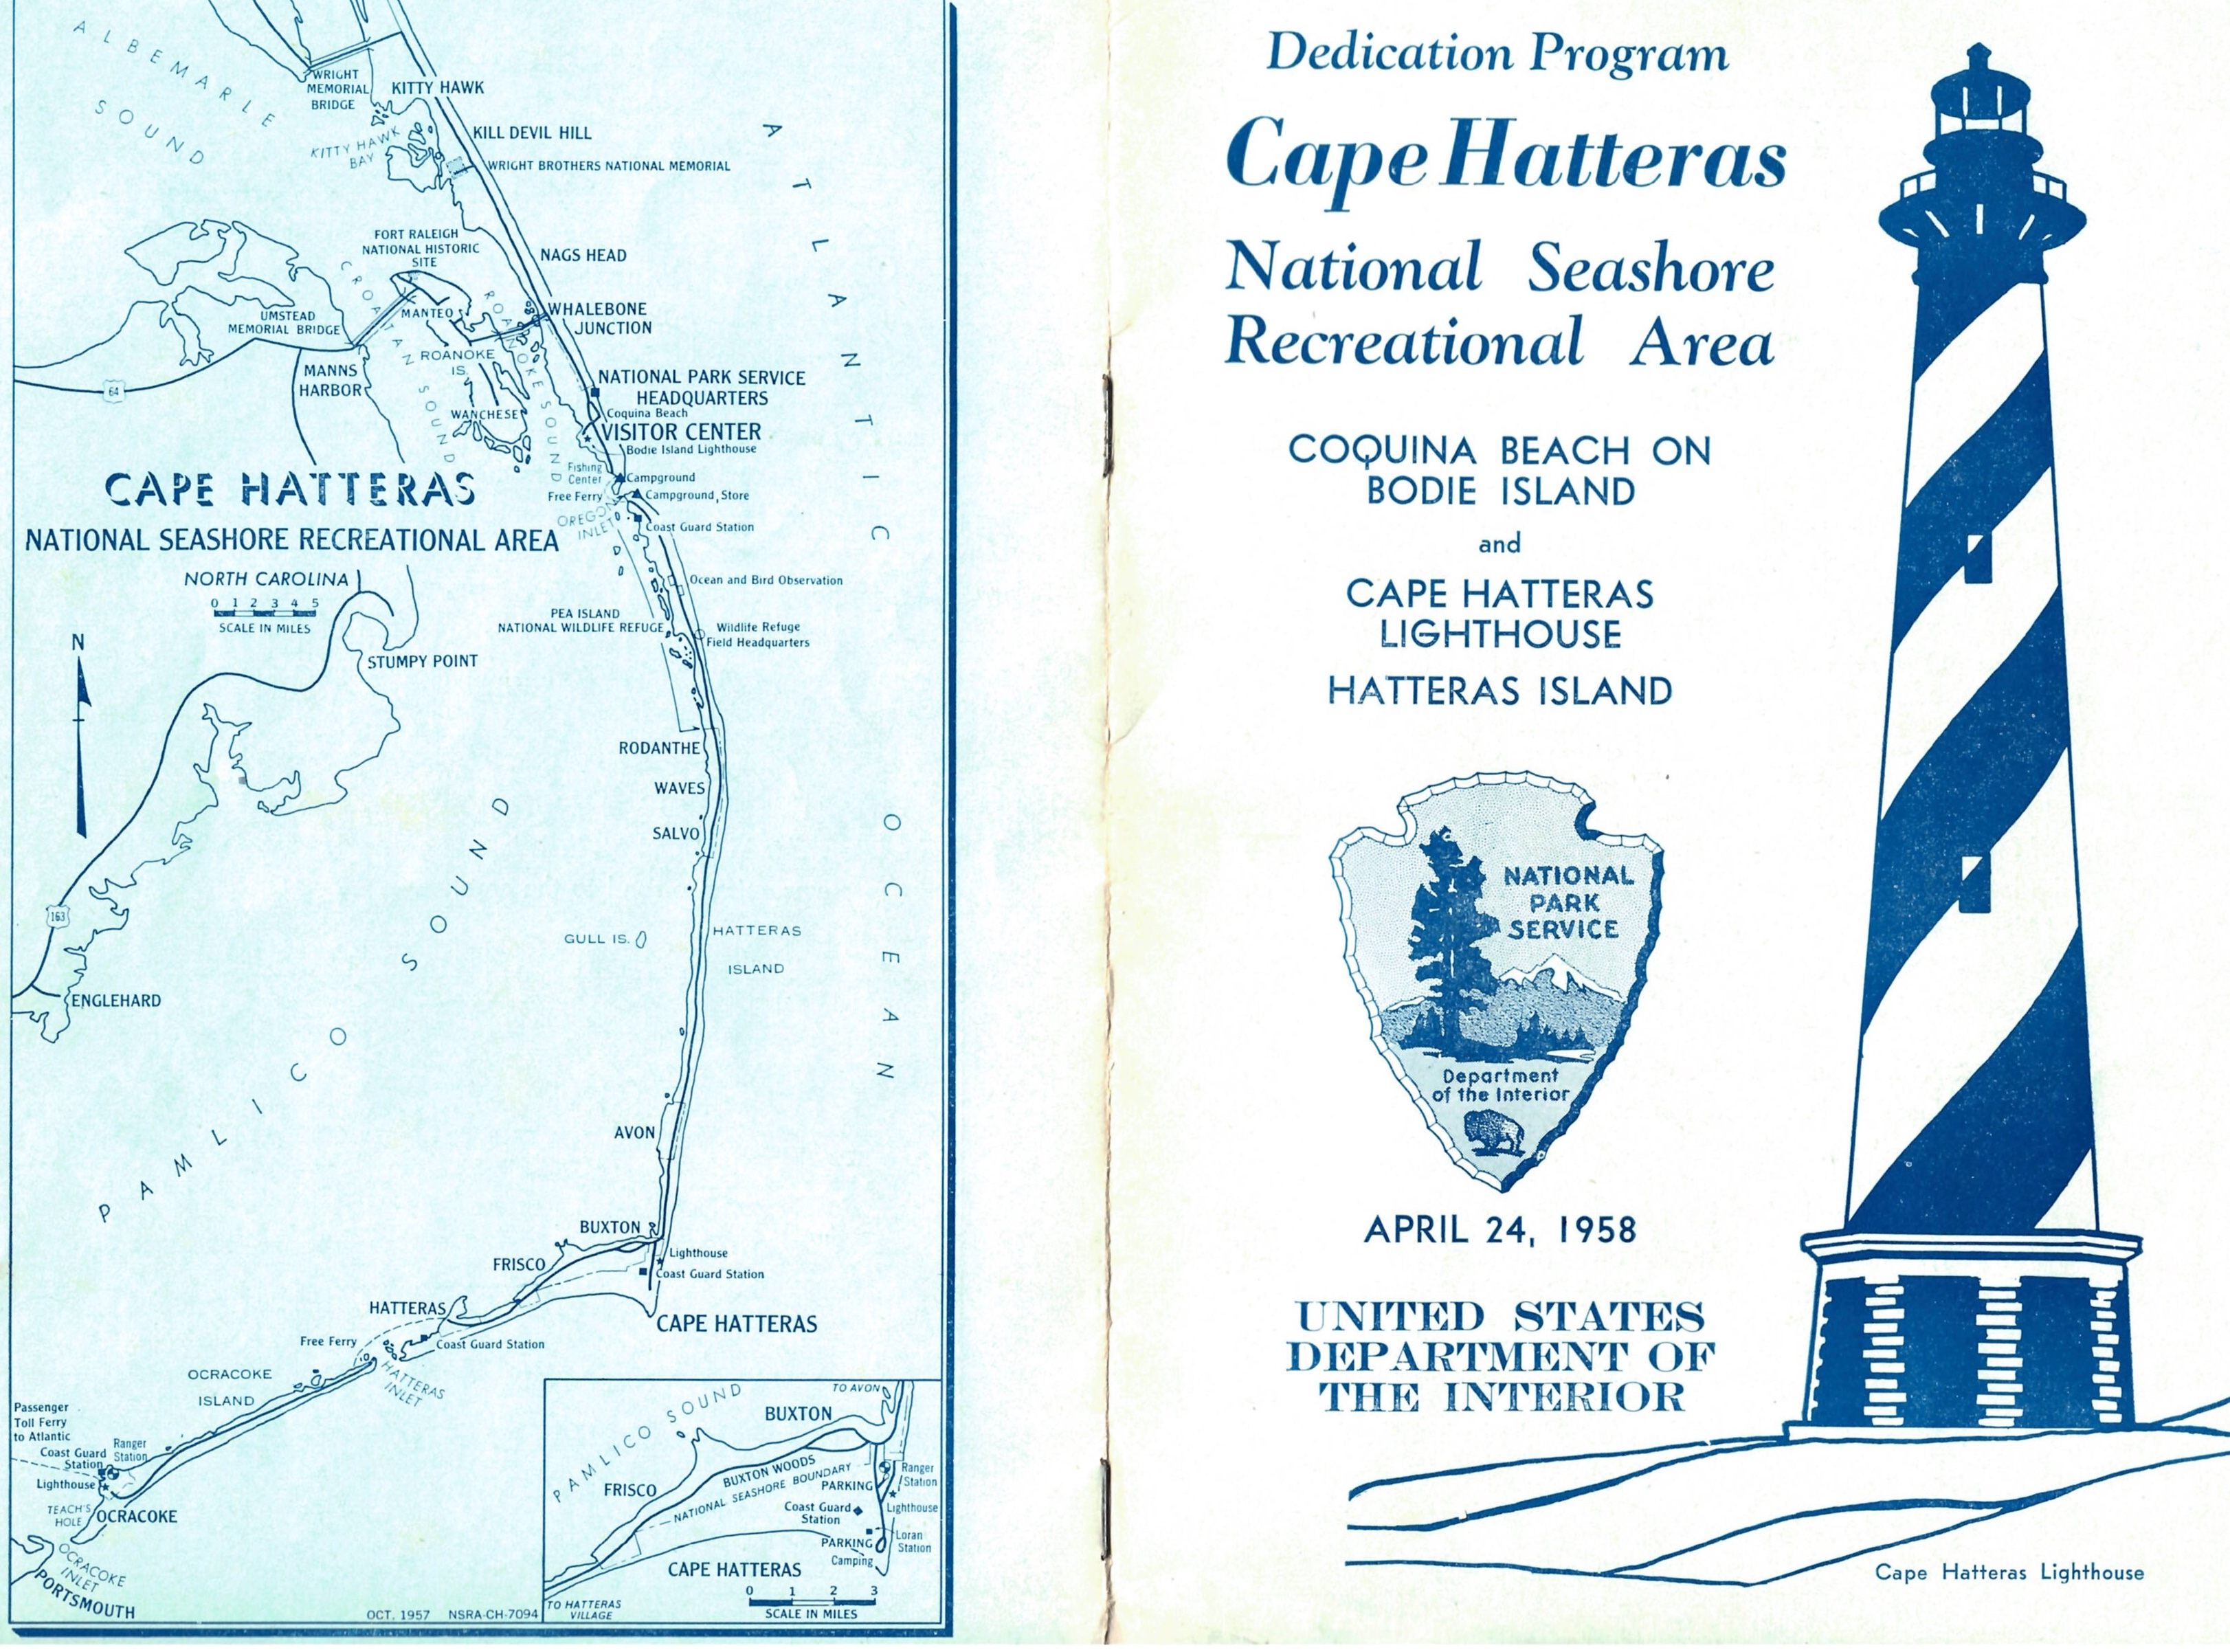 Front and back page of Dedication Program for Cape Hatteras National Seashore Recreational Area